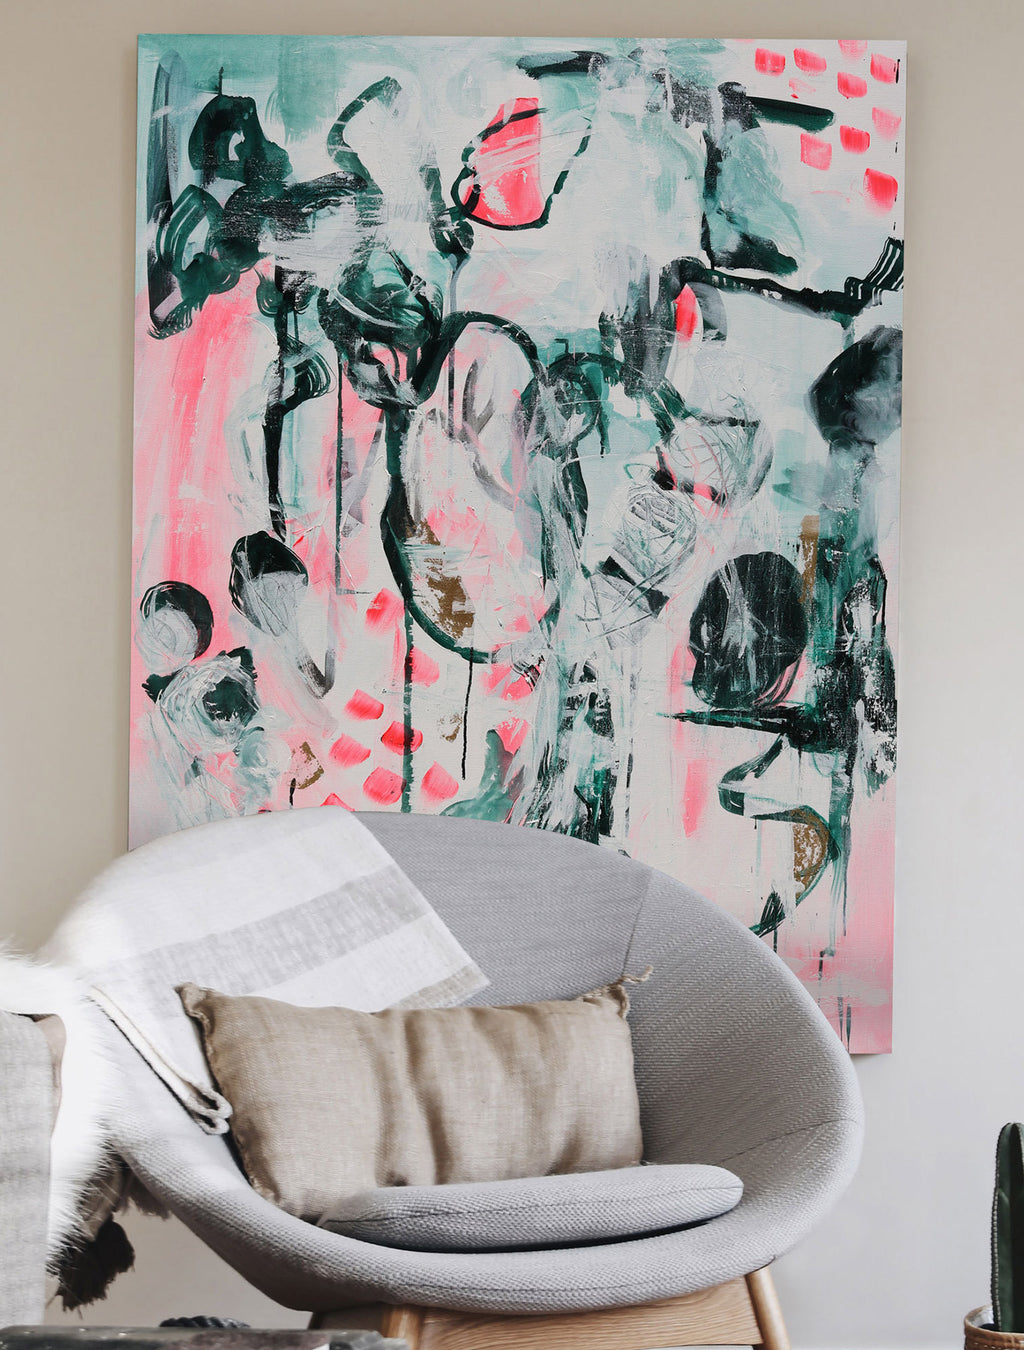 Summer's End - Abstract Painting on wall by Paige Ring